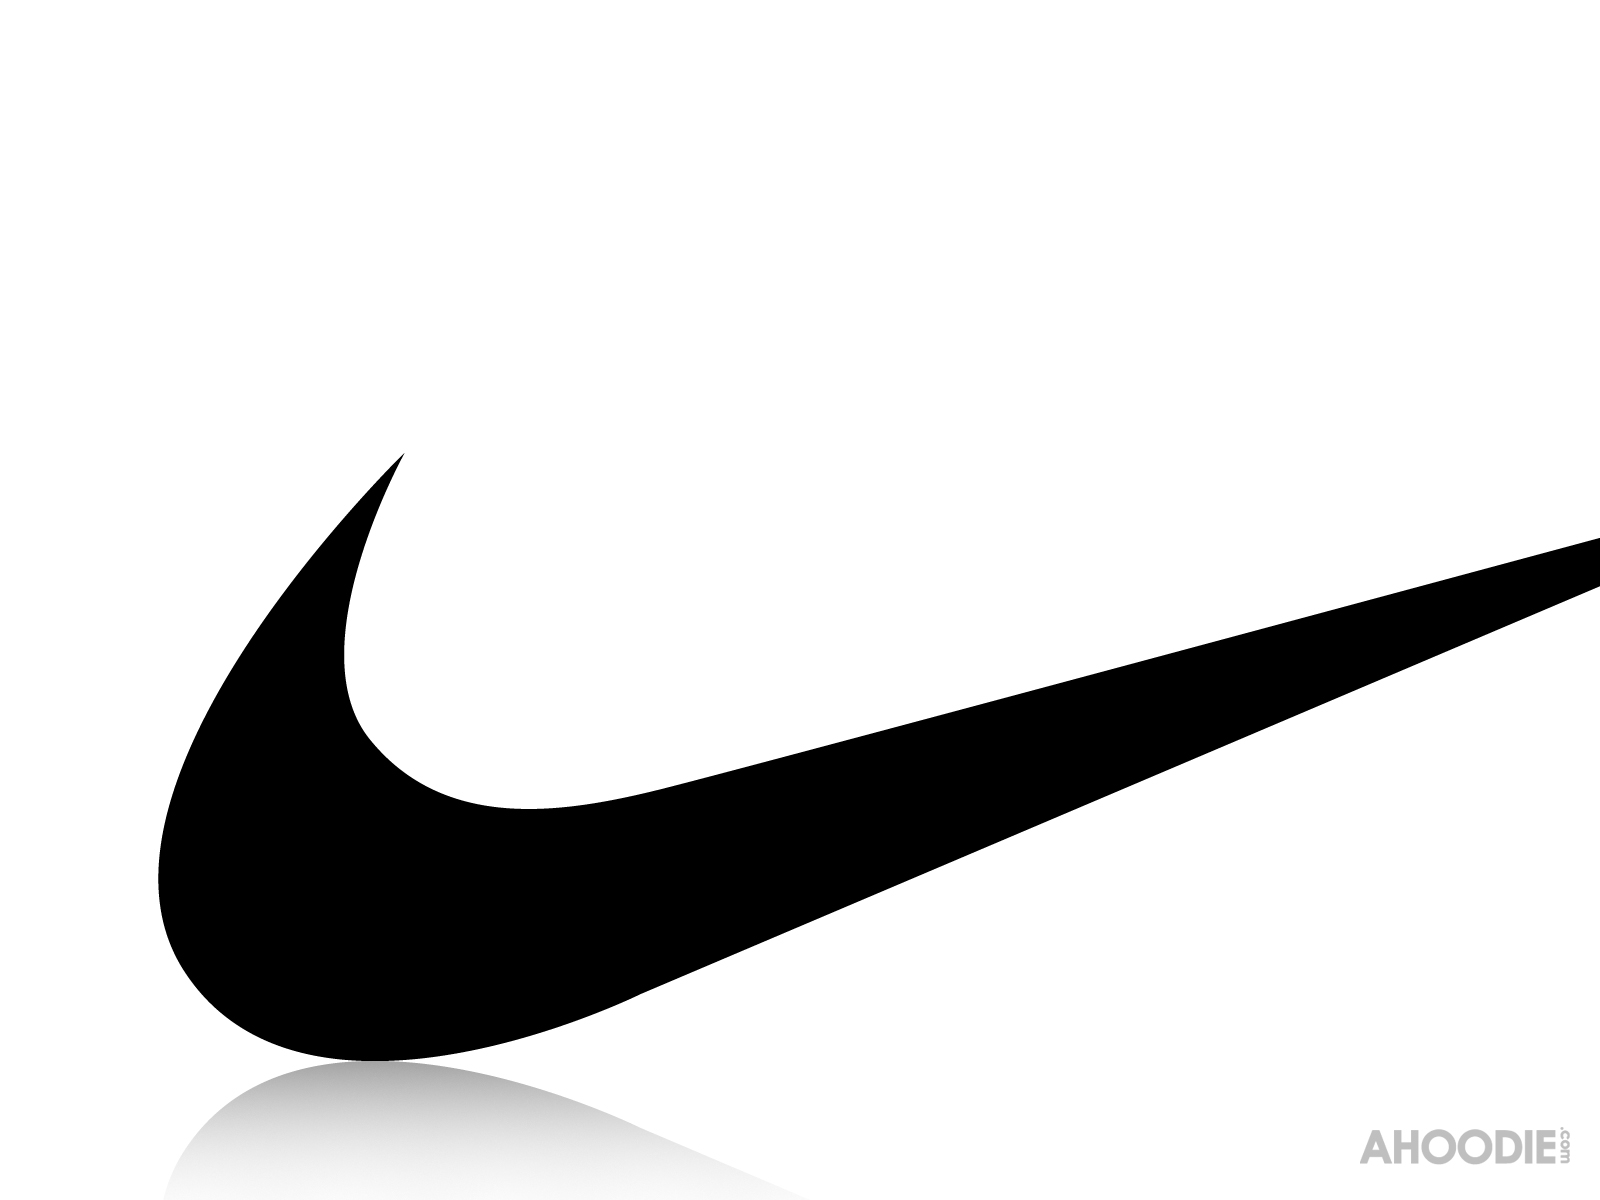 Nike clipart transparent clip art library download Nike Clipart | Free download best Nike Clipart on ClipArtMag.com clip art library download